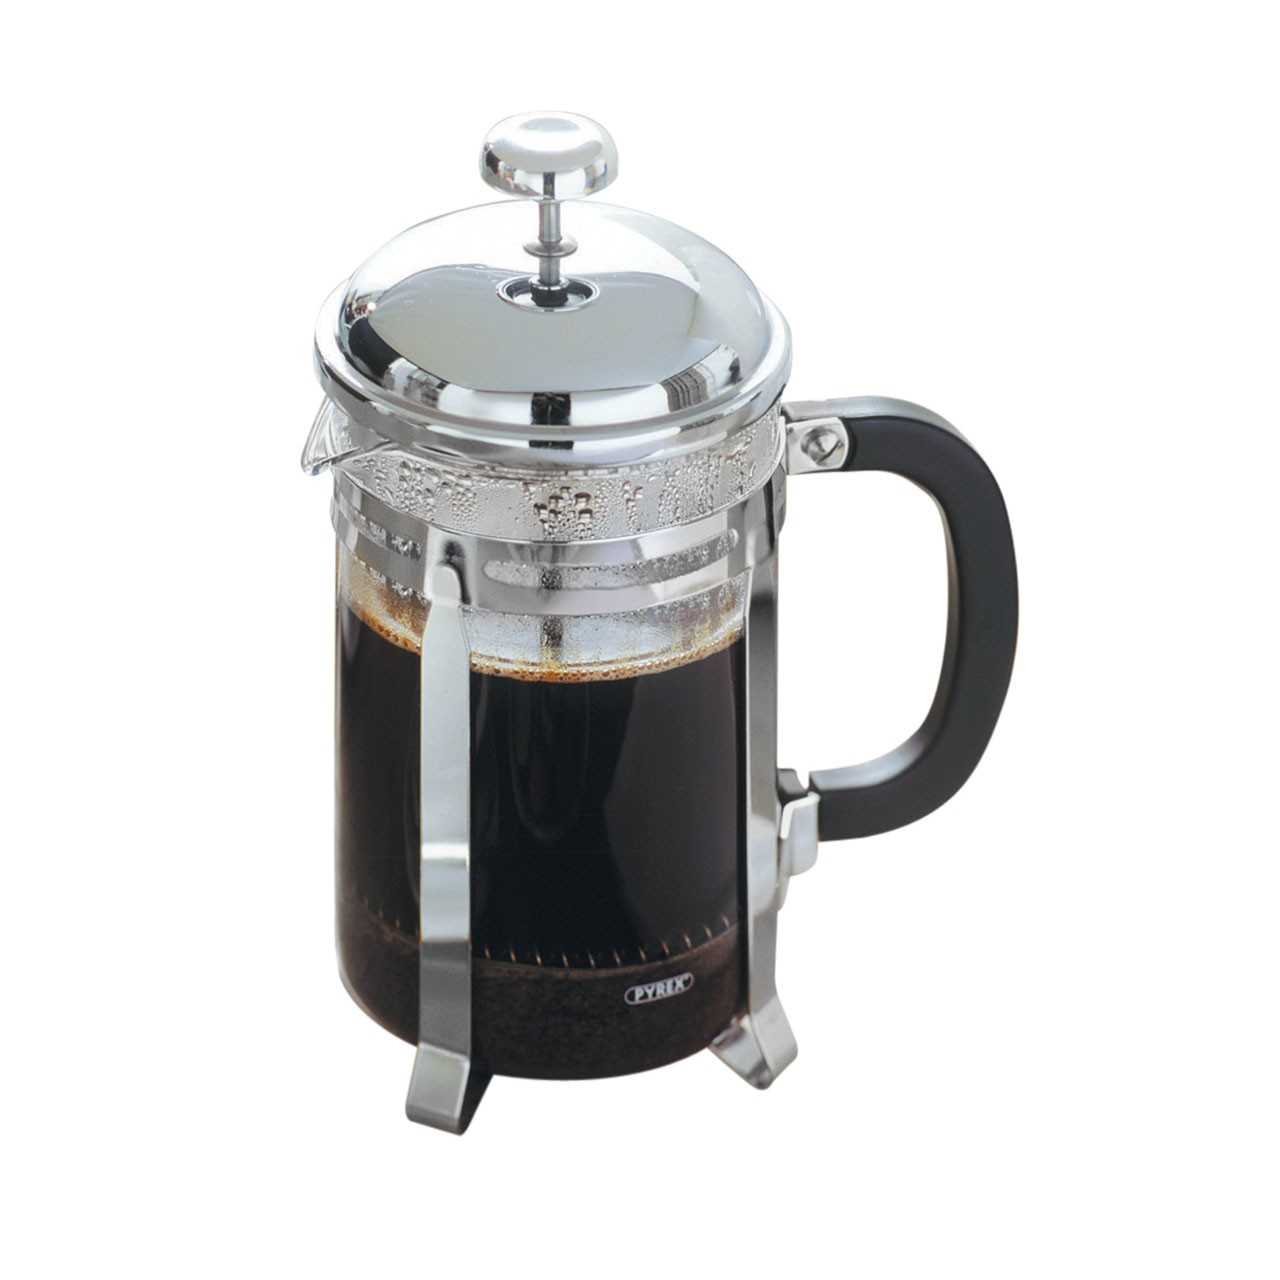 Cafetiere, Chrome/Pyrex Heat Resistant Glass Insert, 6 Cup/800ml